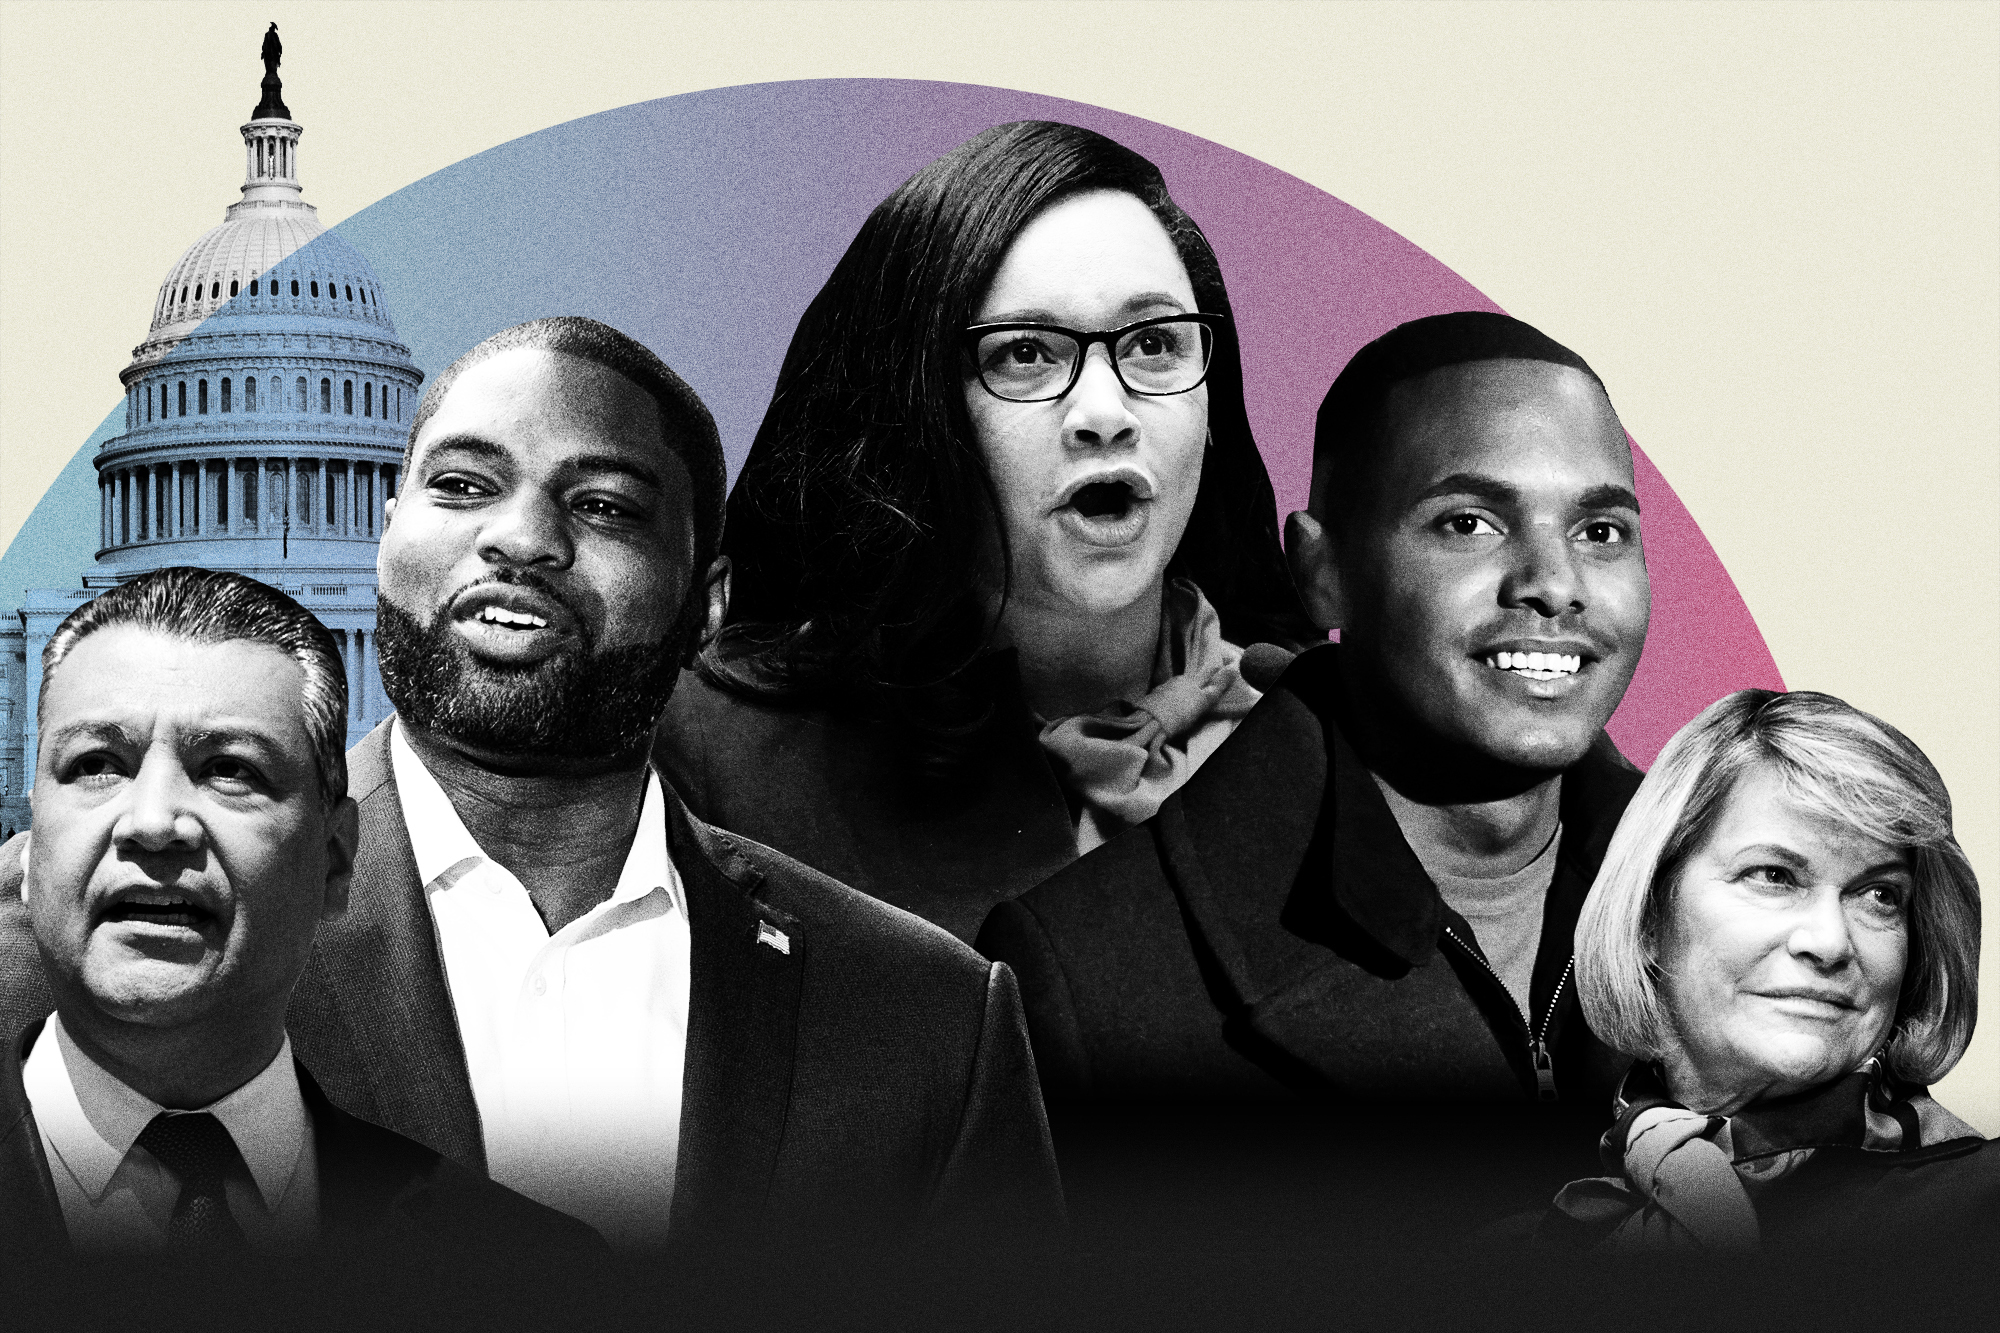 They're coming in hot: The best quotes from our interviews with Congress' most diverse freshman class